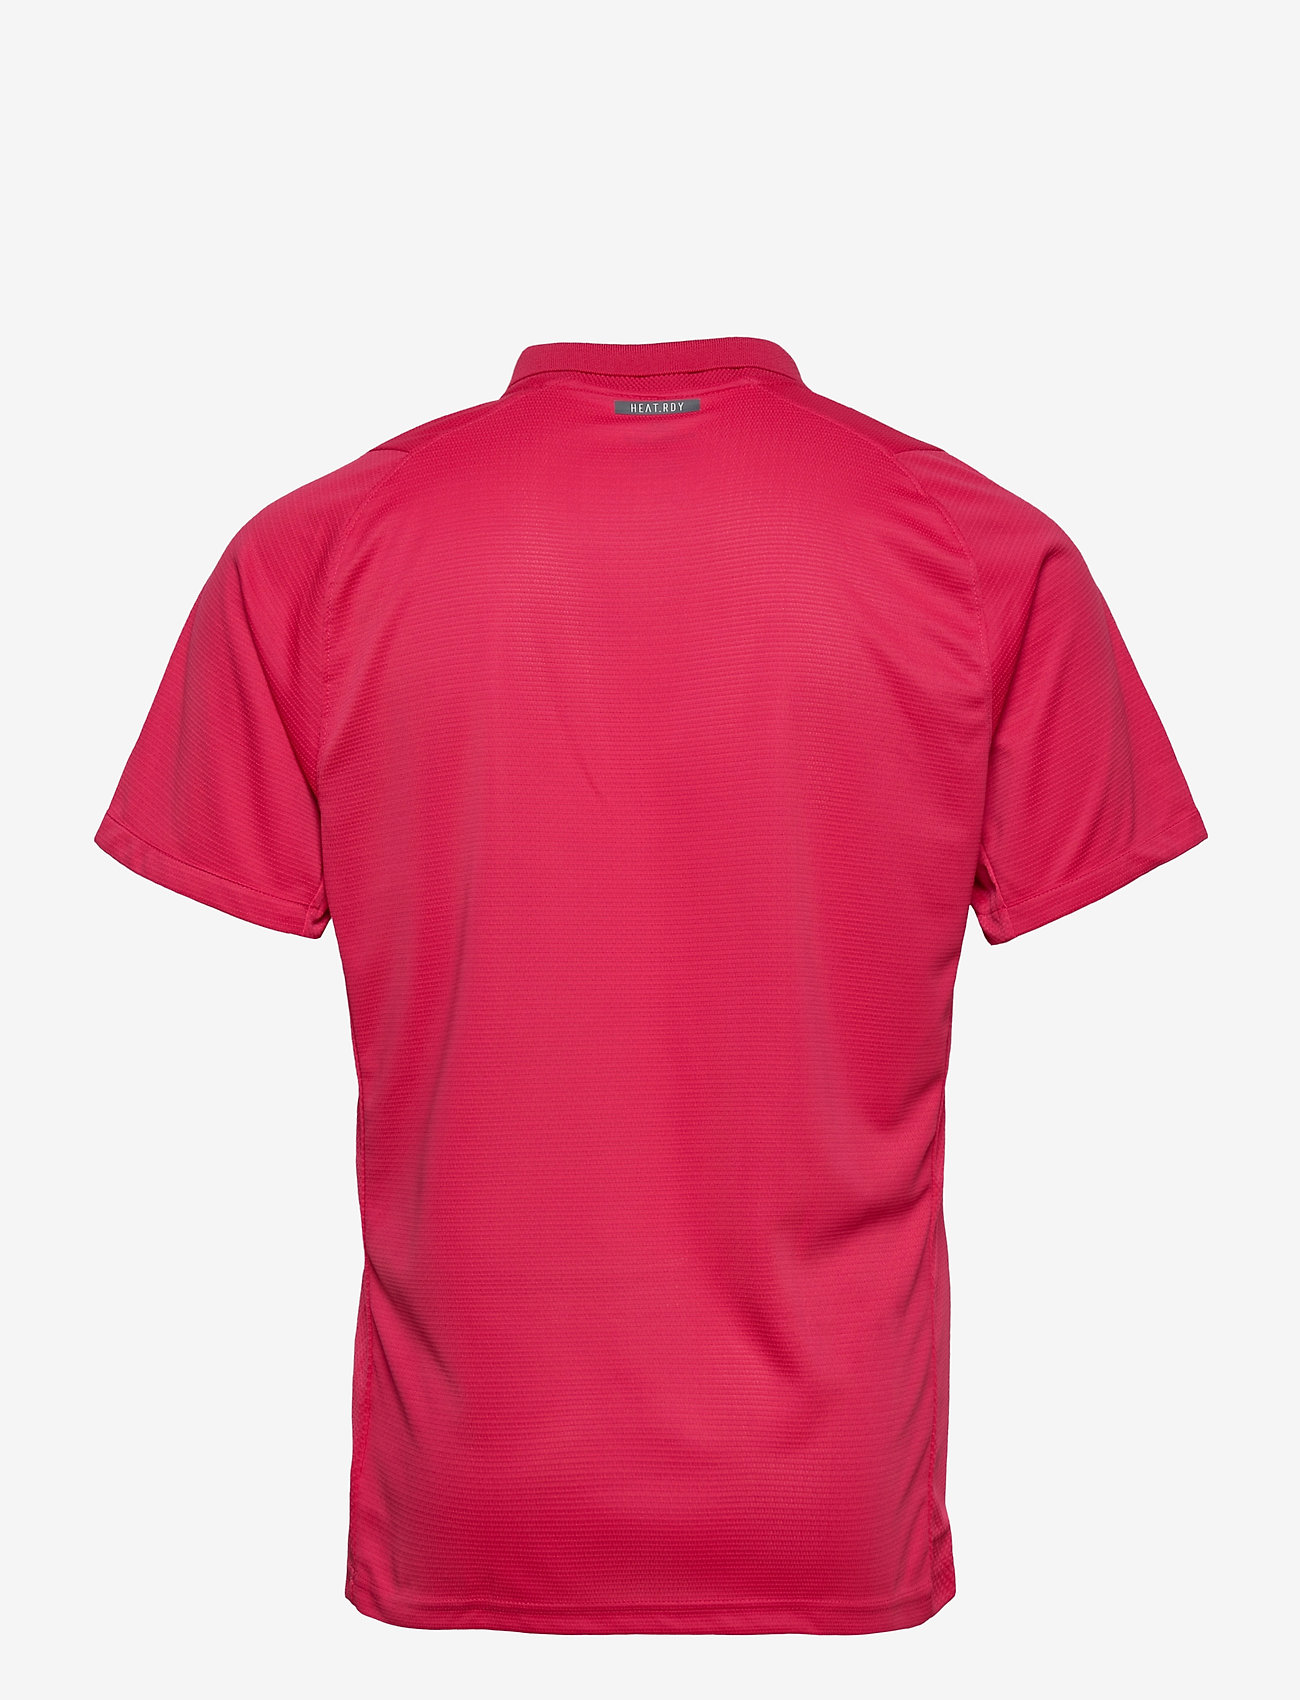 adidas Performance FREELIFT TENNIS POLO SHIRT HEAT.RDY - Poloskjorter PINK - Menn Klær